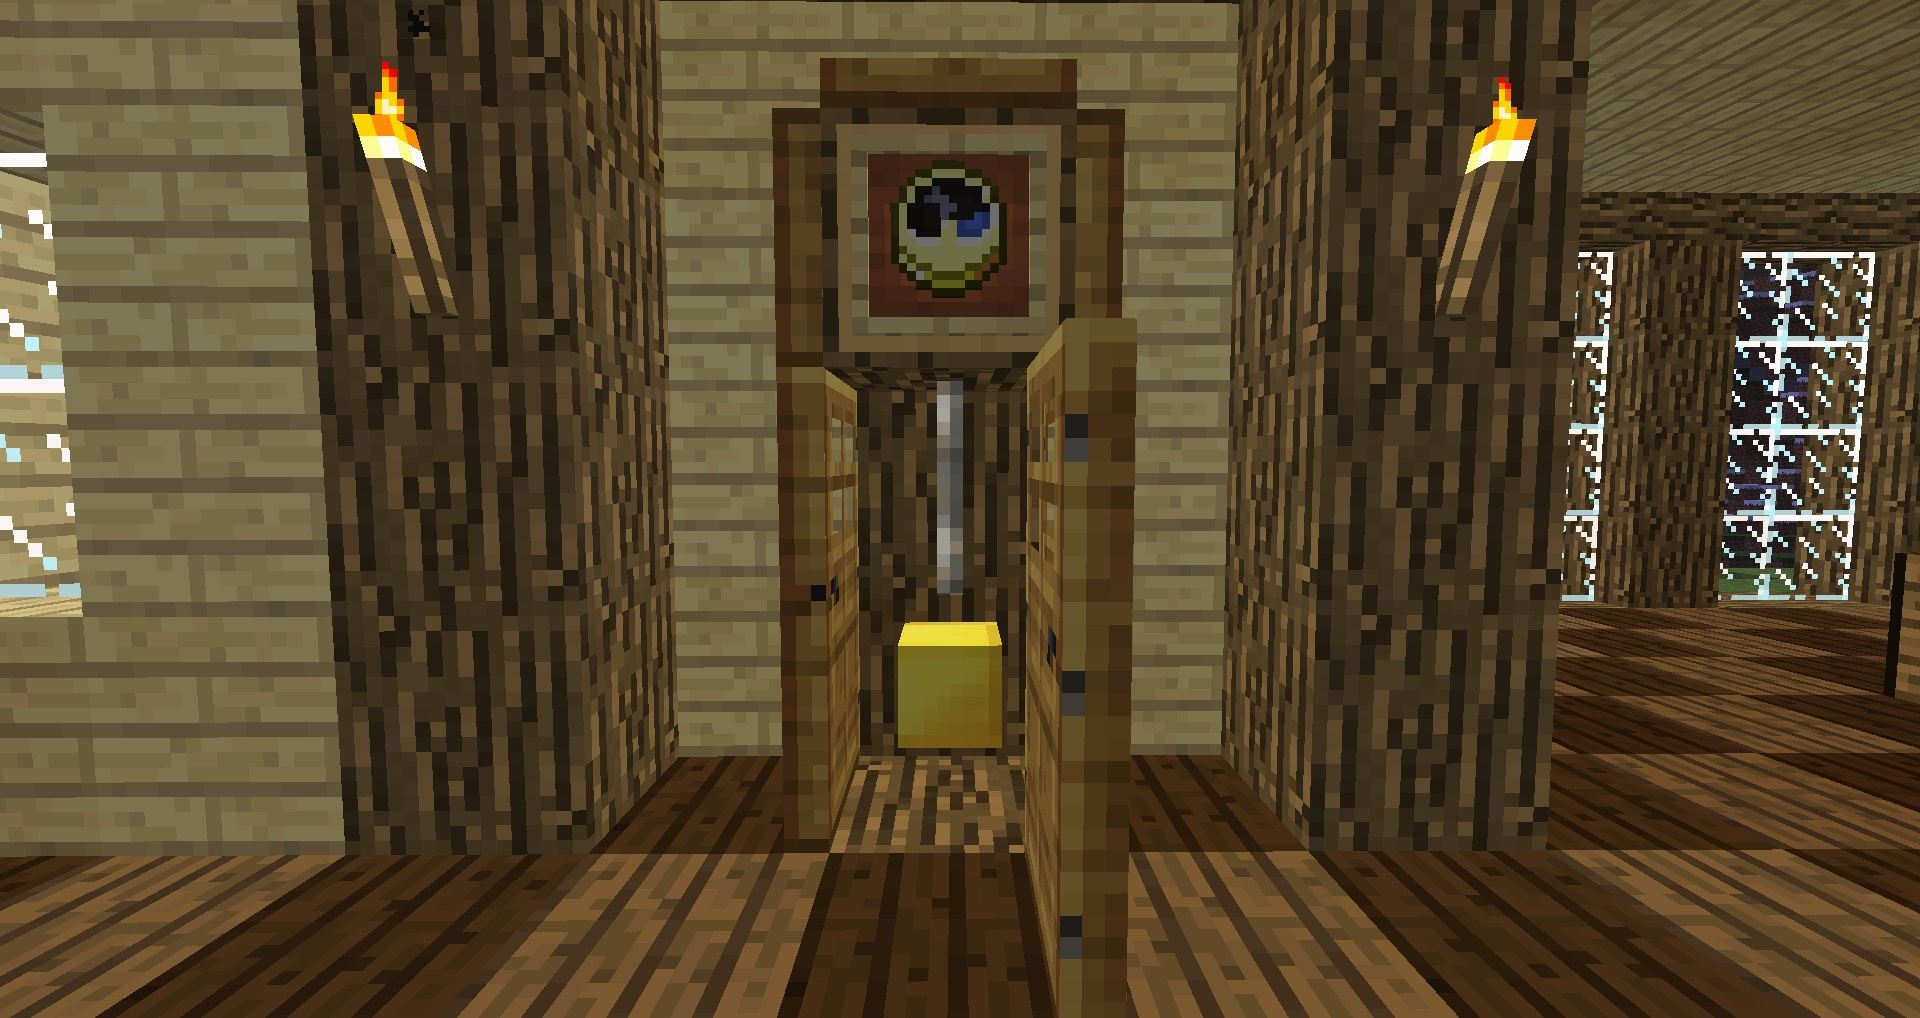 Minecraft Furniture Bedroom minecraft furniture - decoration - minecraft grandfather clock